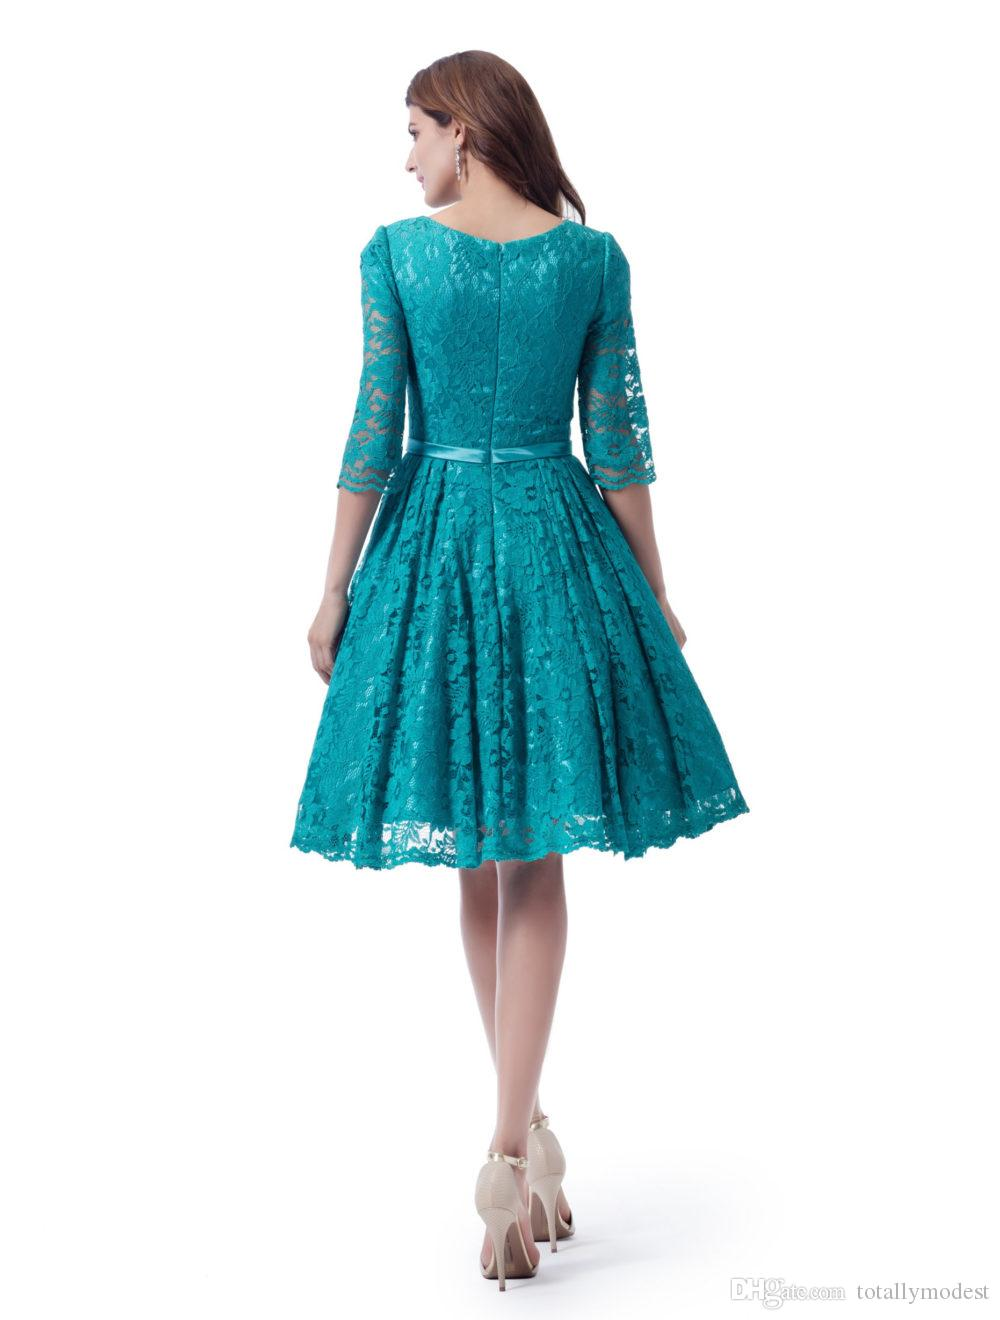 Turquoise Lace Short Modest Bridesmaid Dresses With 34 Sleeves Queen Anne Neckline Sheer Sleeve Teal Knee Length Bridesmaid Party Dresses